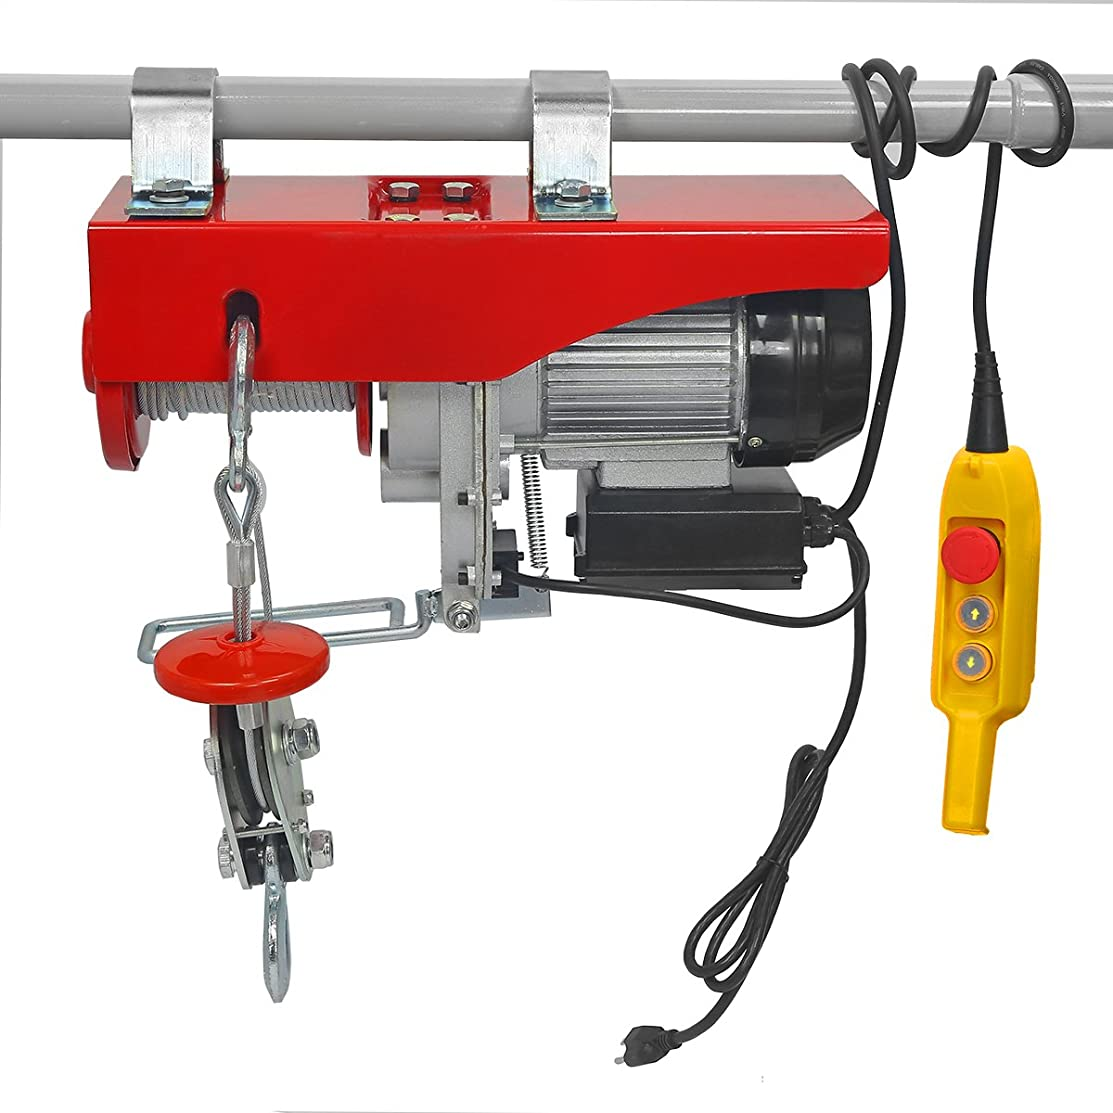 Electric Hoist Automatic Lift 2000LB Capacity with Remote Control Auto Shop Overhead